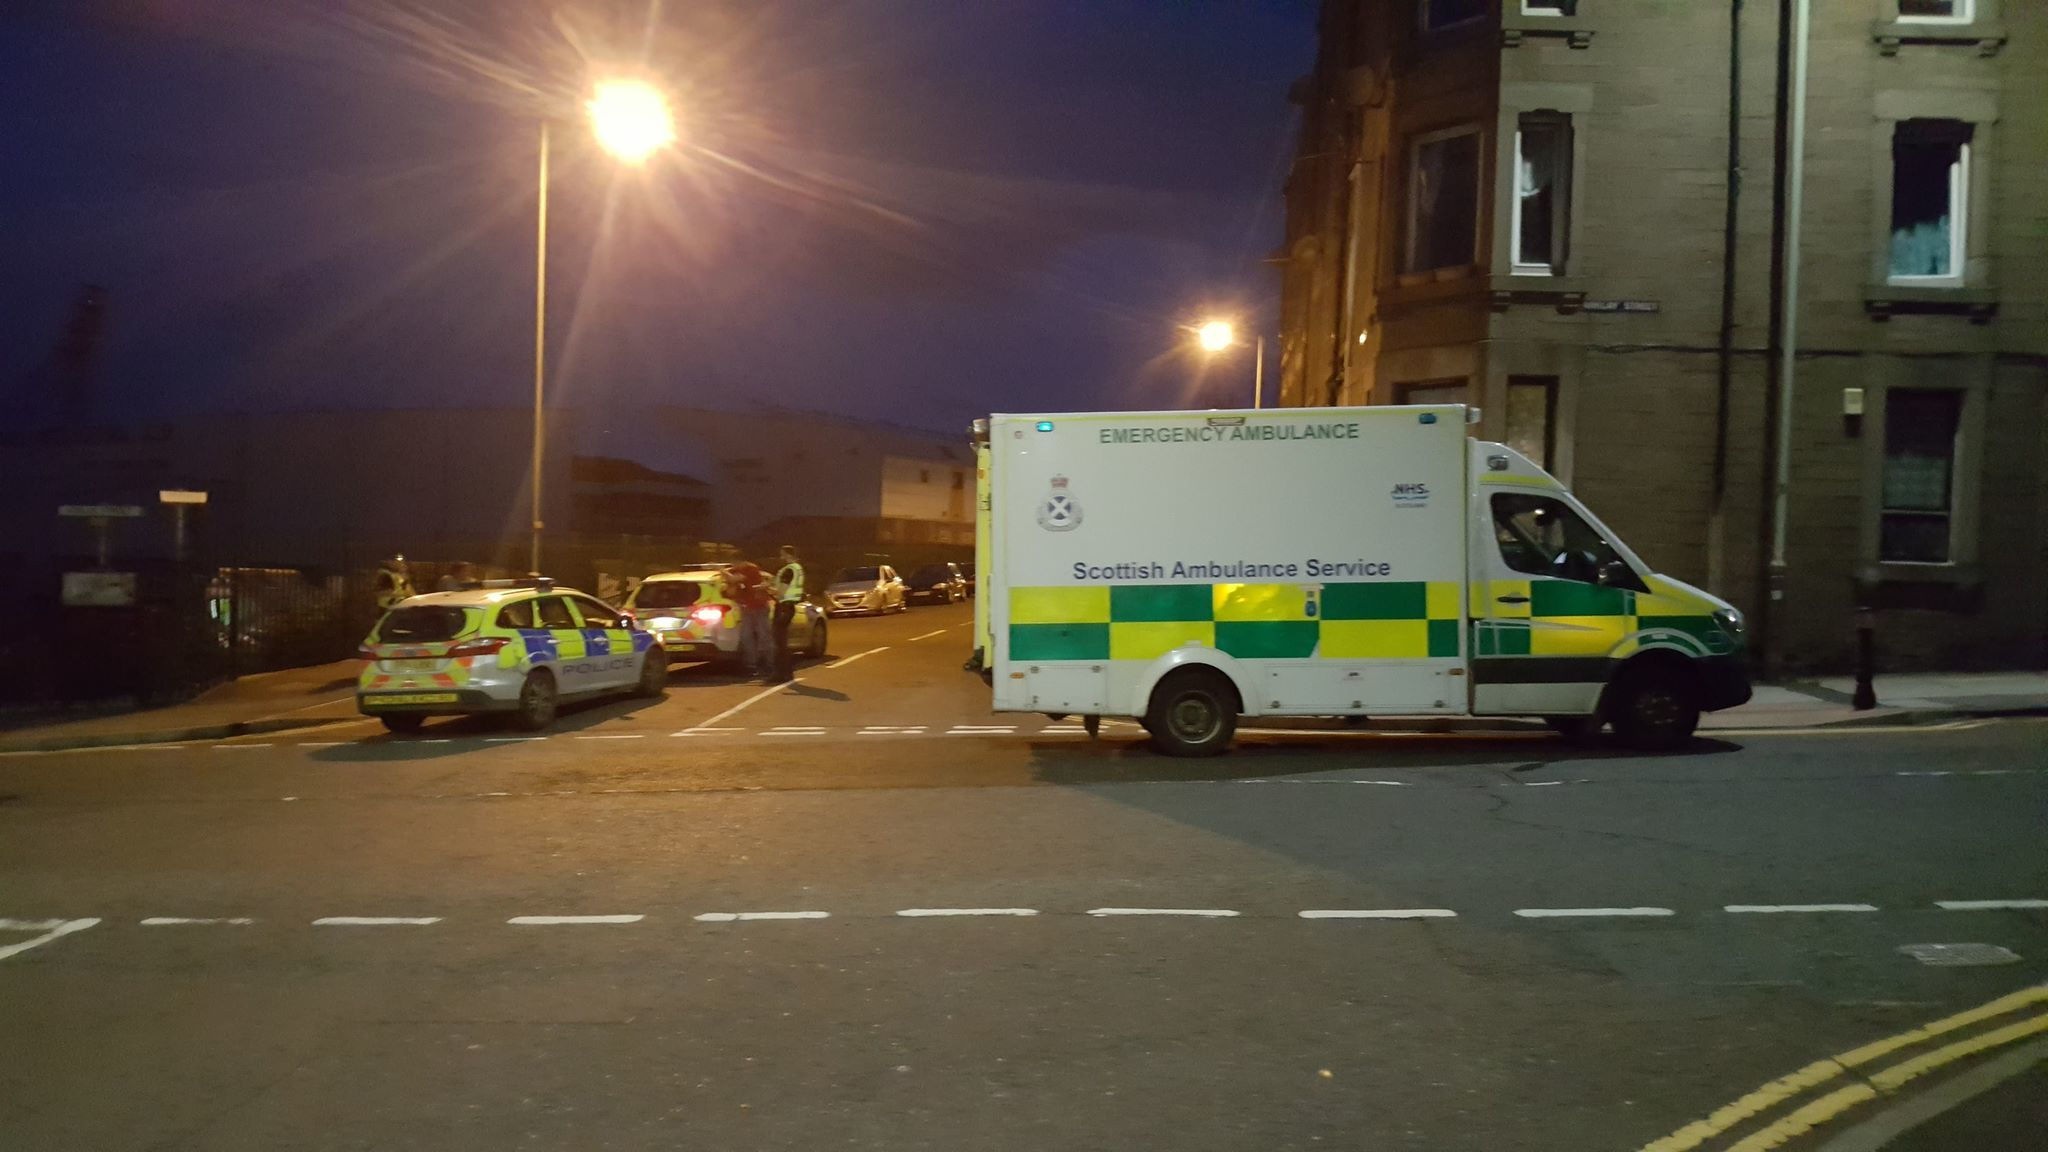 Police and an ambulance at the scene.